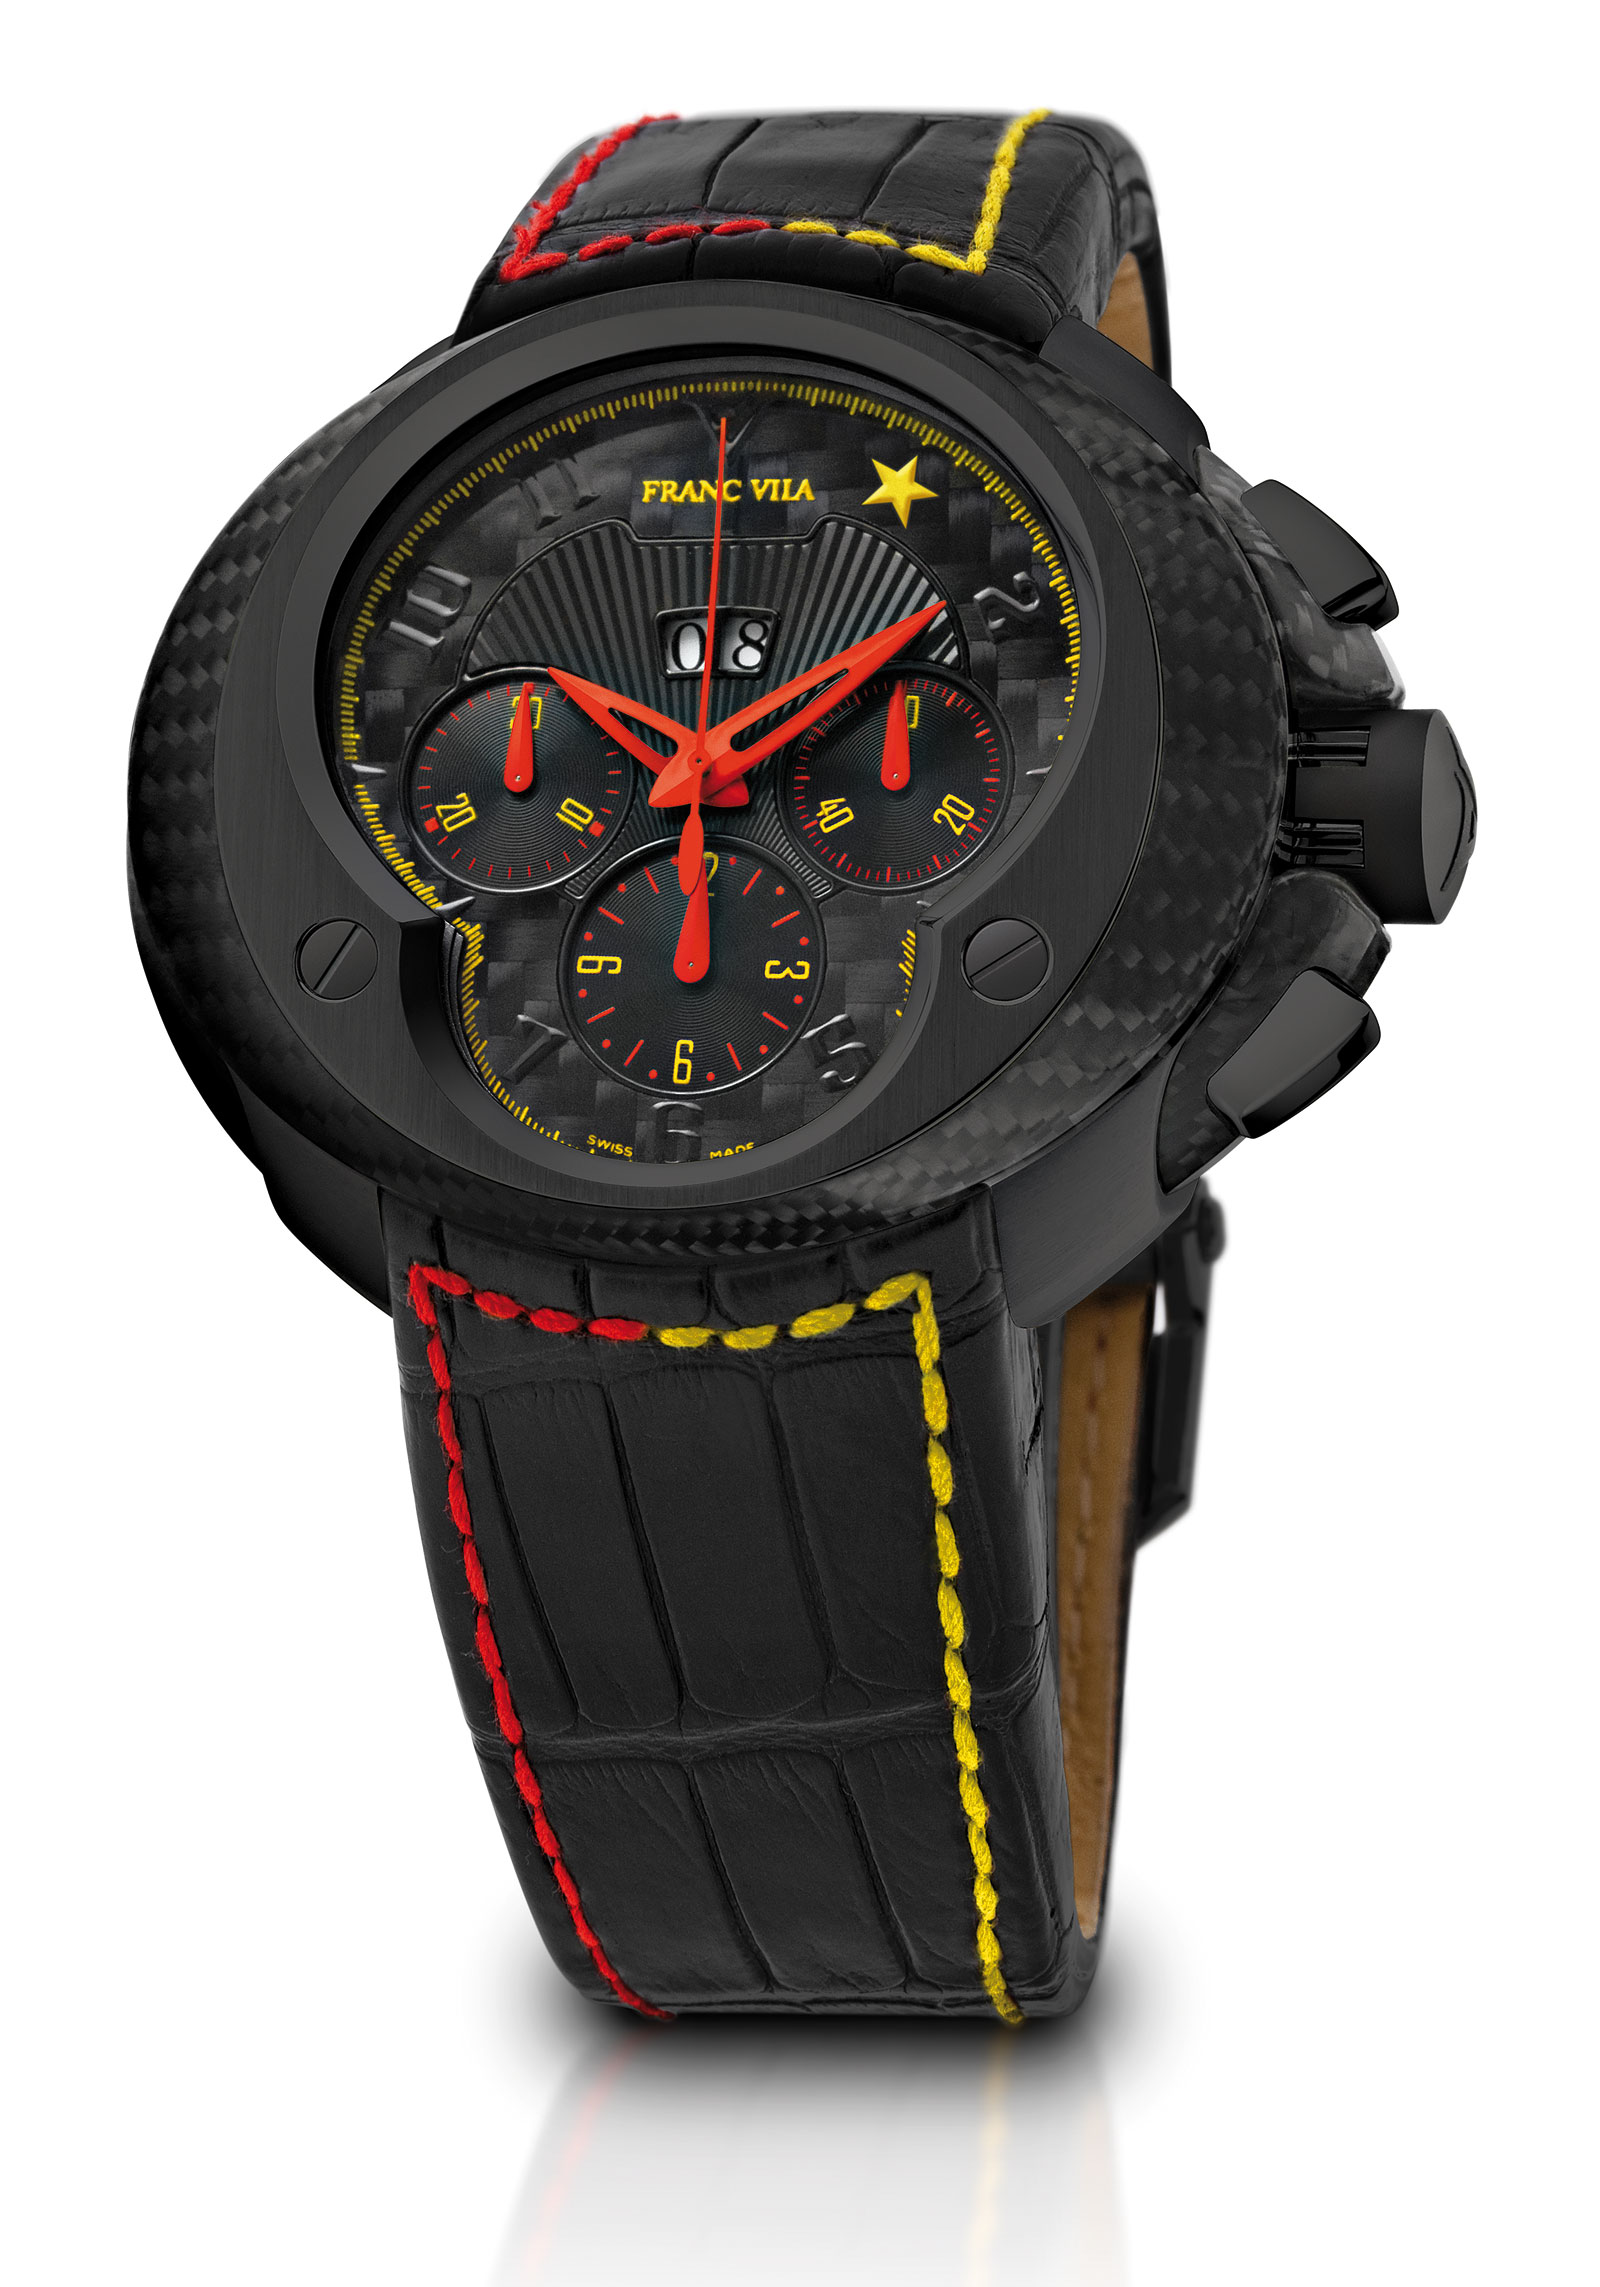 Franc Vila EVOS 8 Cobra Estrella Roja – Chronograph with Big Date